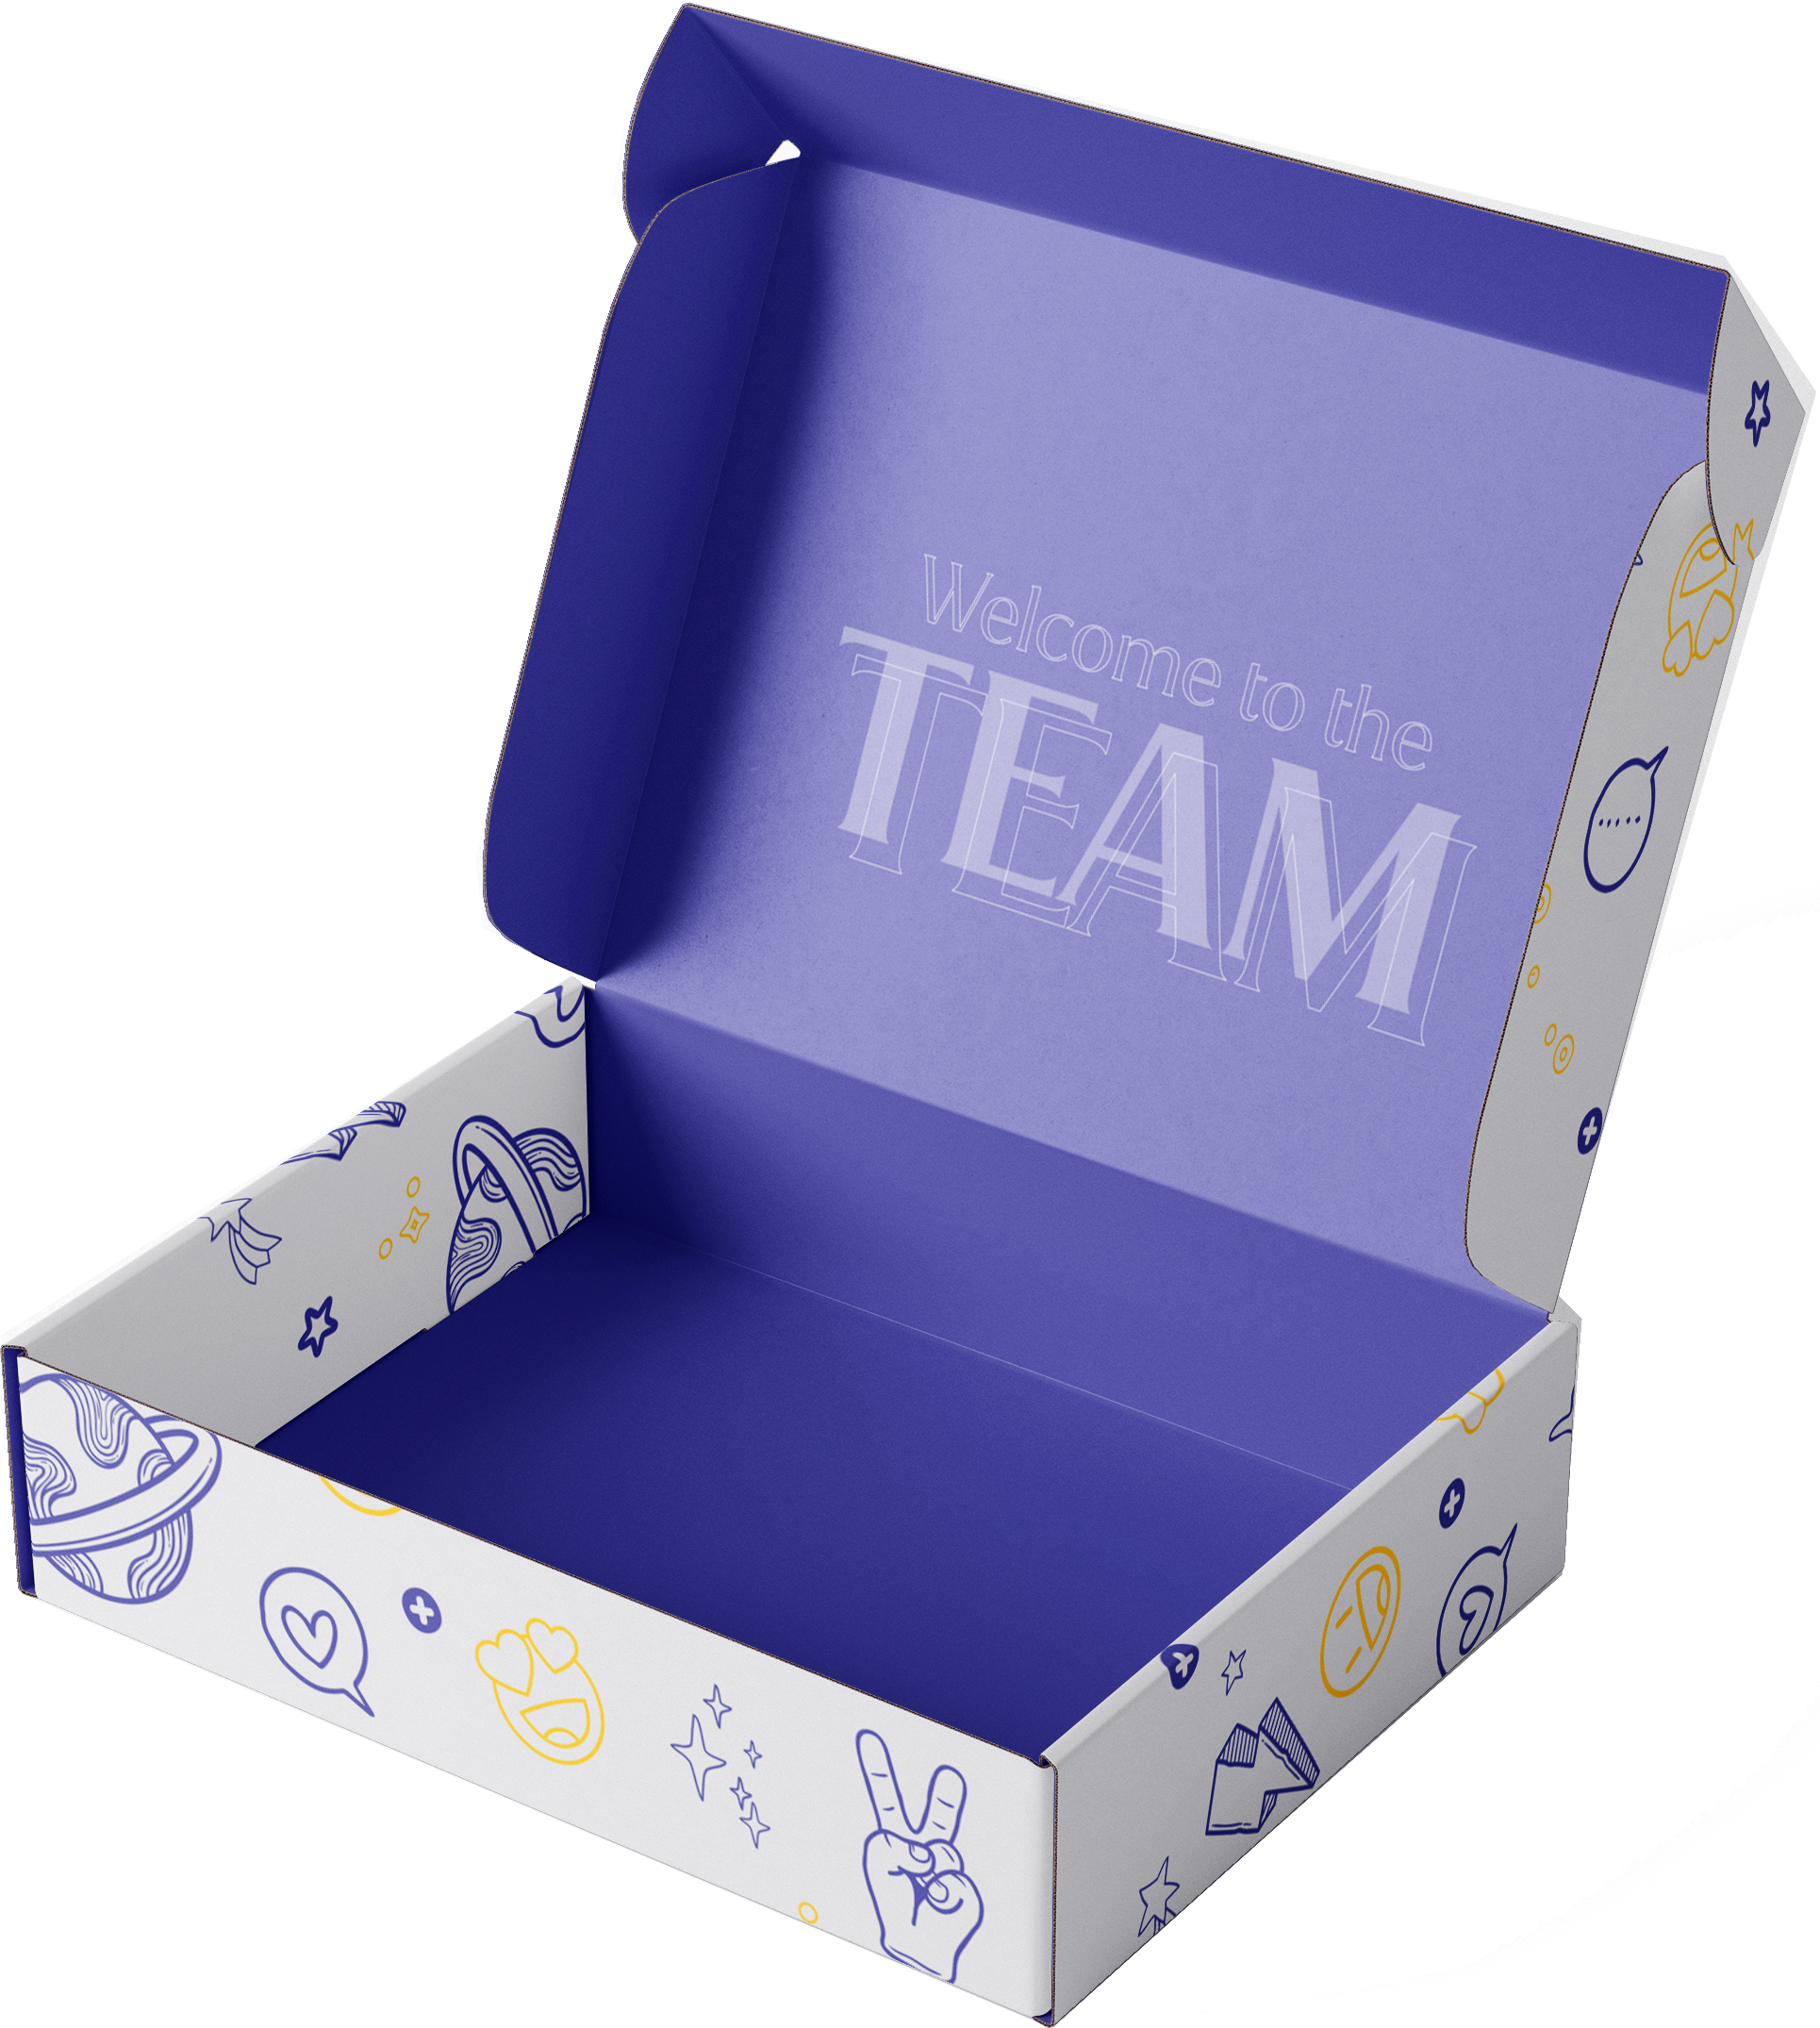 Double-Sided Mailer Box